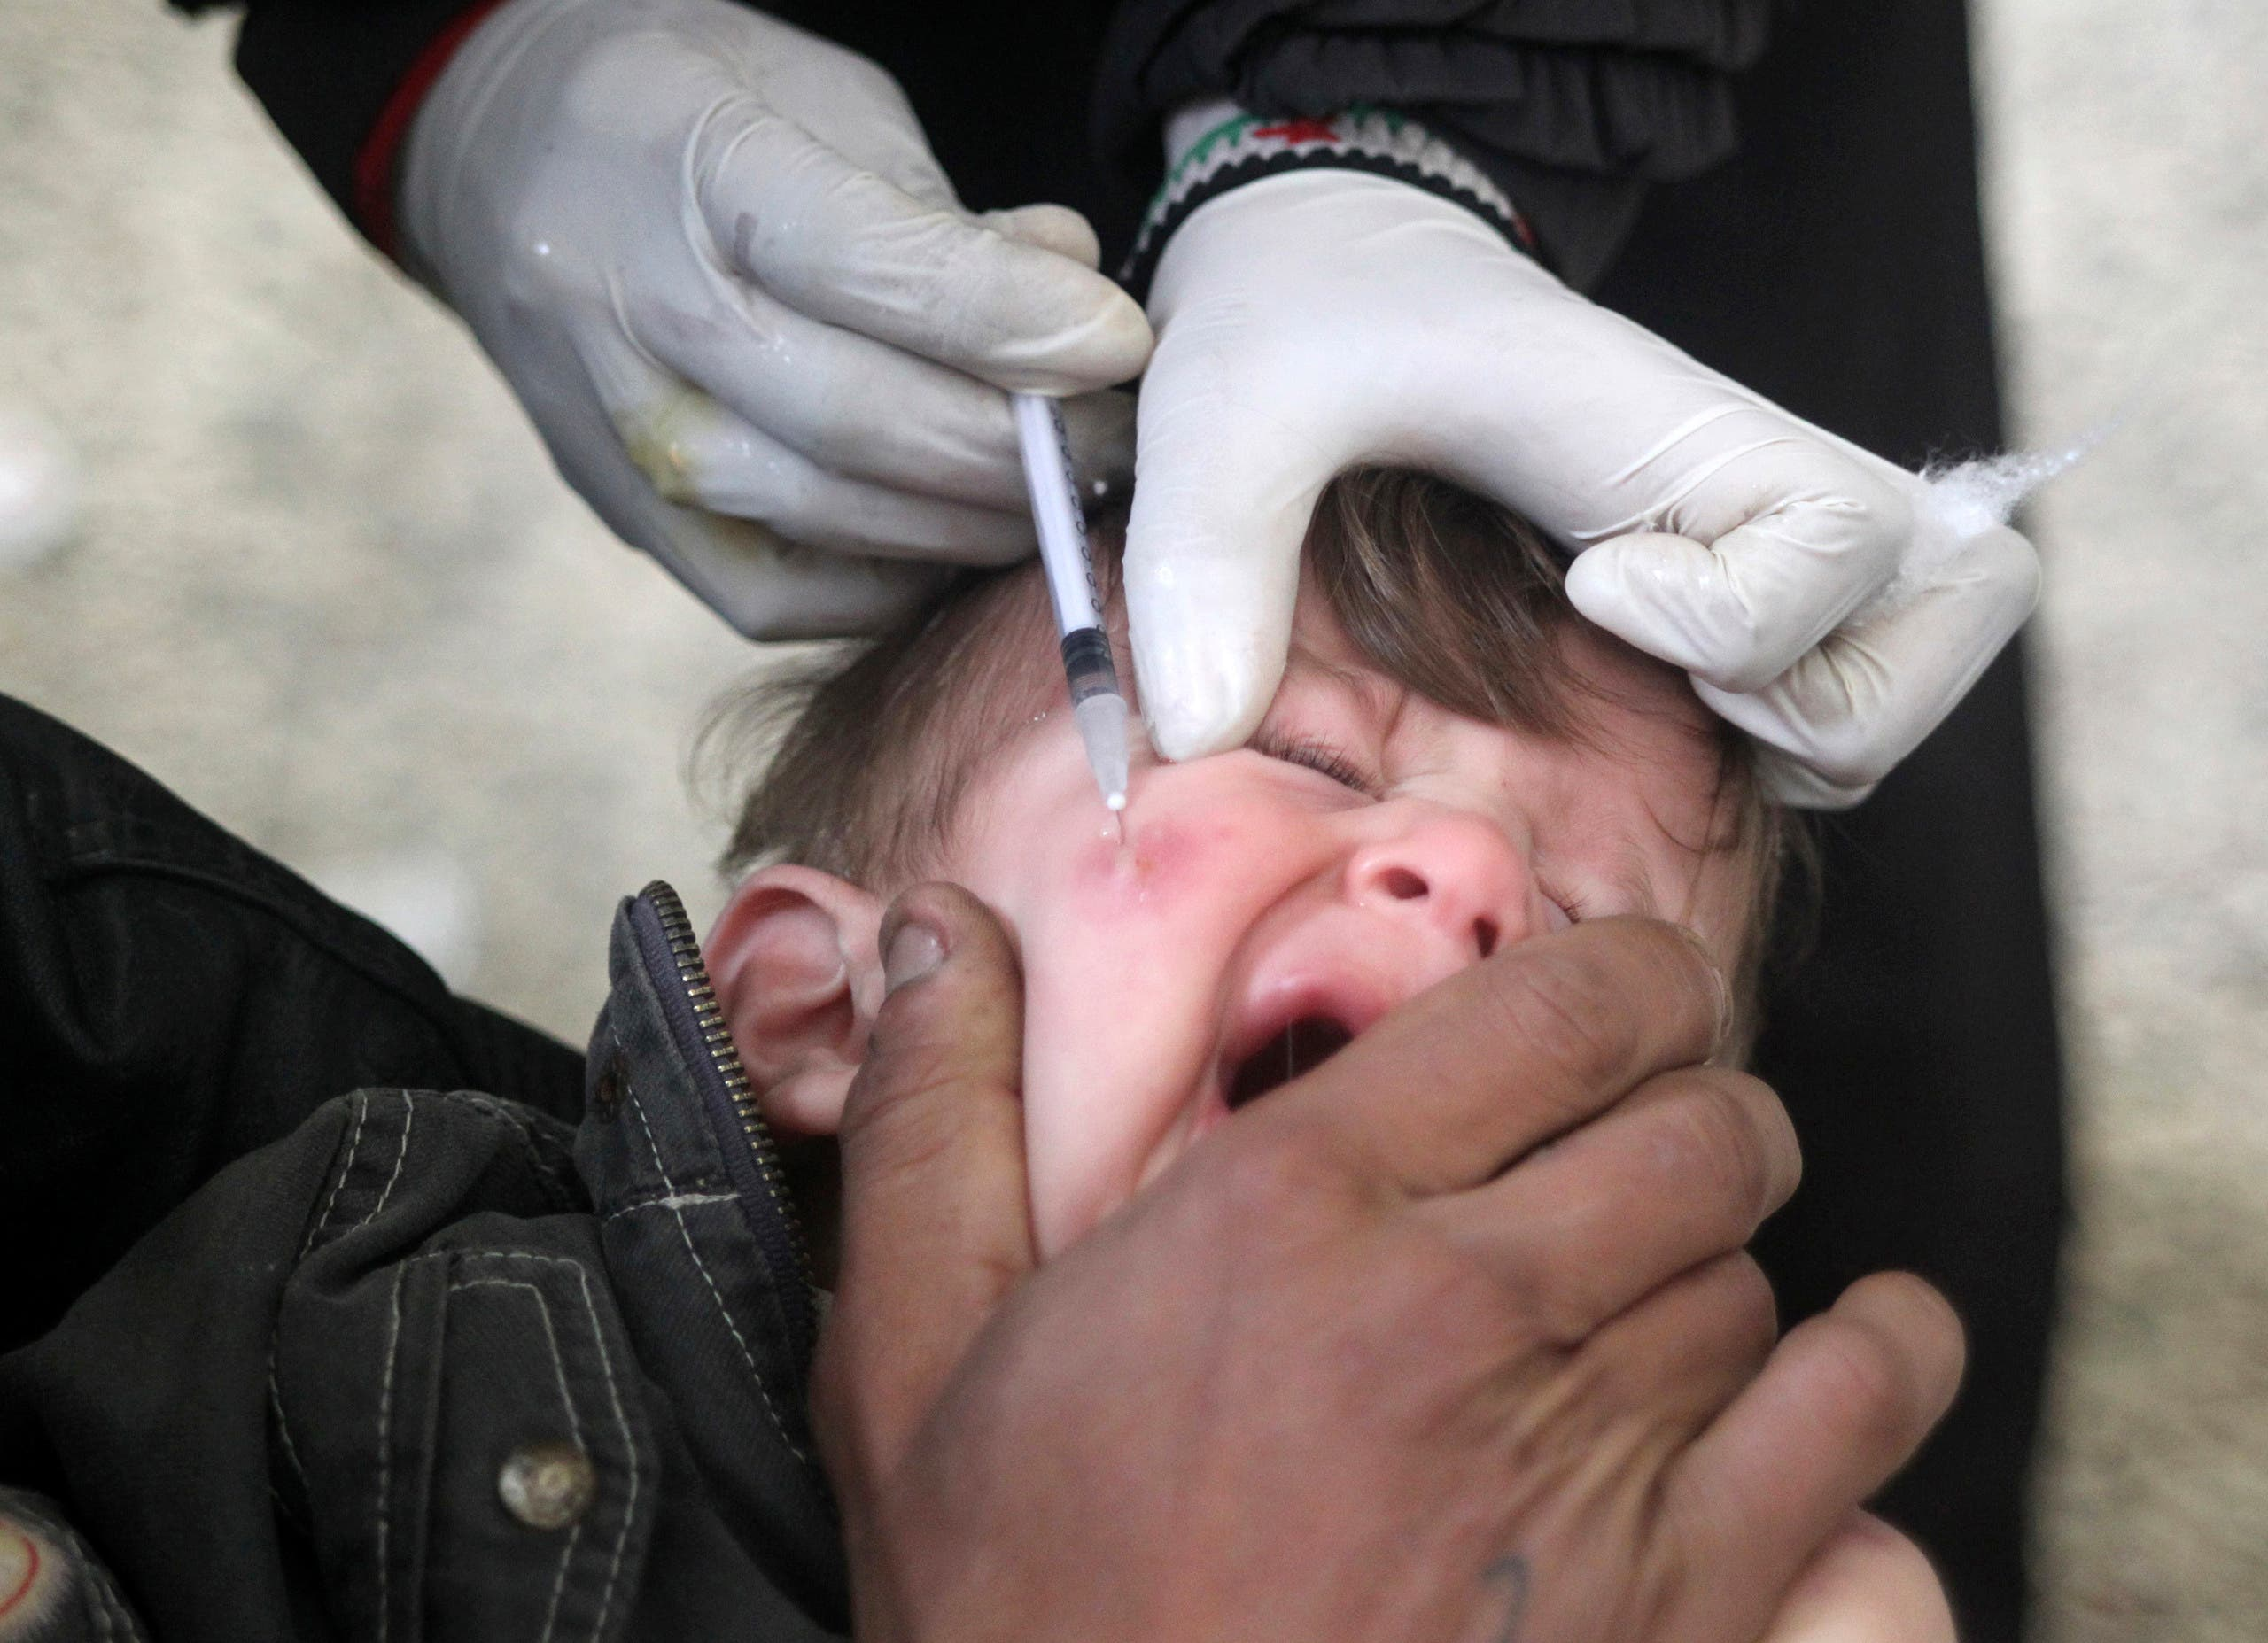 A doctor treats a child showing symptoms of leishmaniasis at a hospital in Aleppo, February 11, 2013. (Reuters)